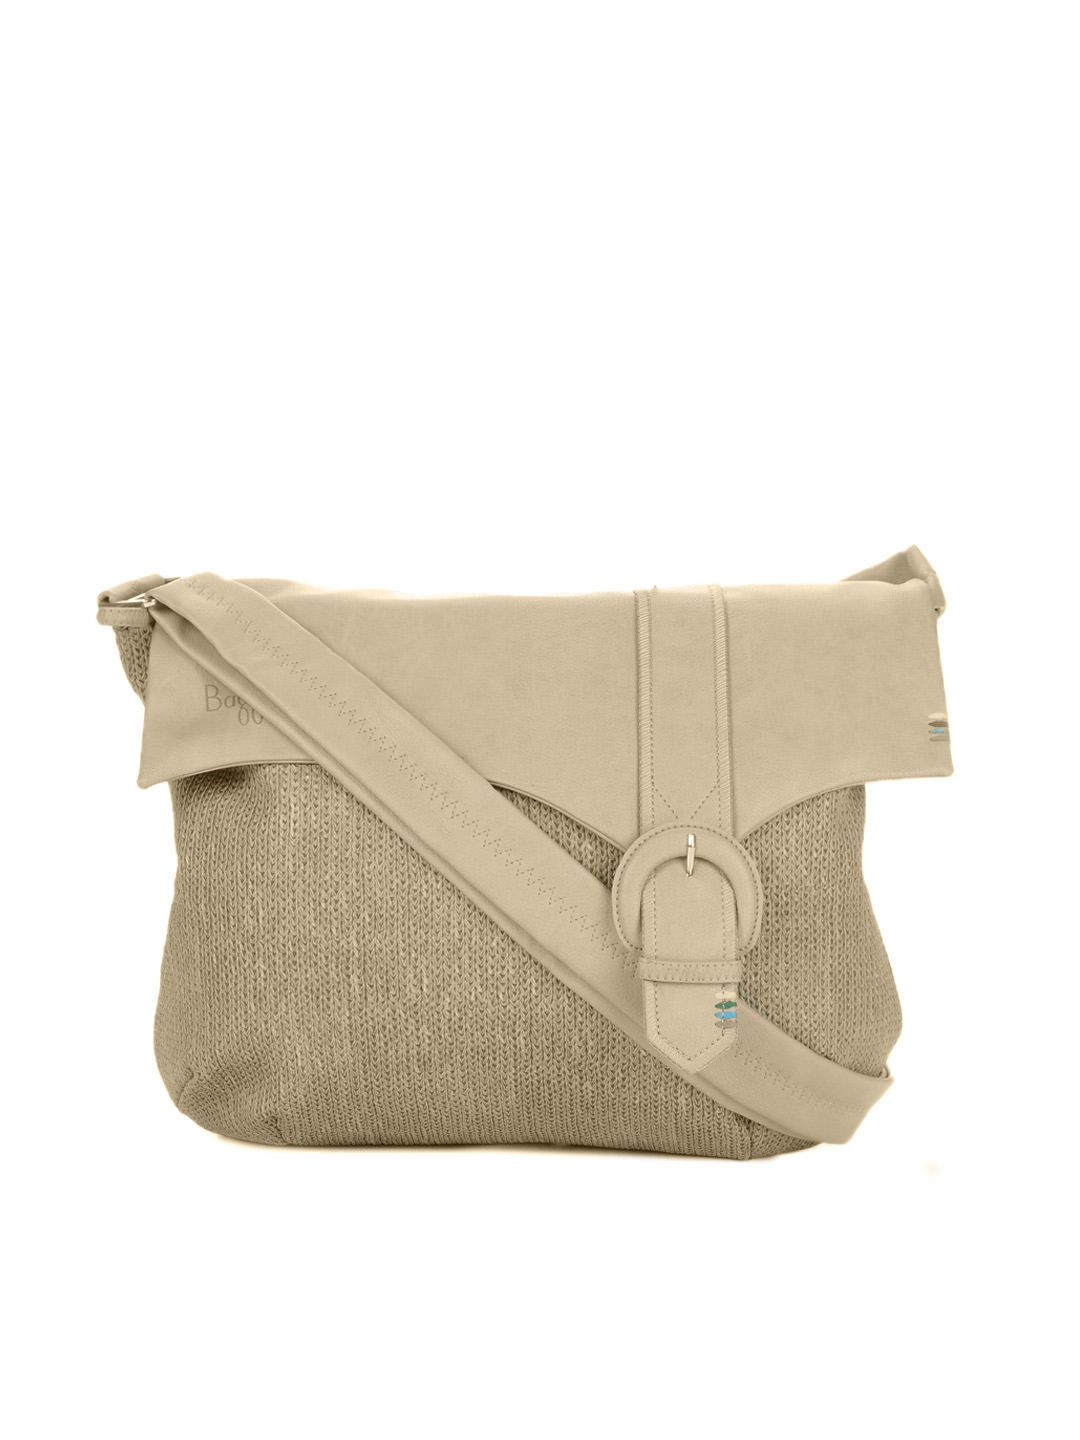 Baggit Brown Sling Bag 8903414527656 Is Sold By Myntra In India Check Price And Exclusive Offers At Priceiq